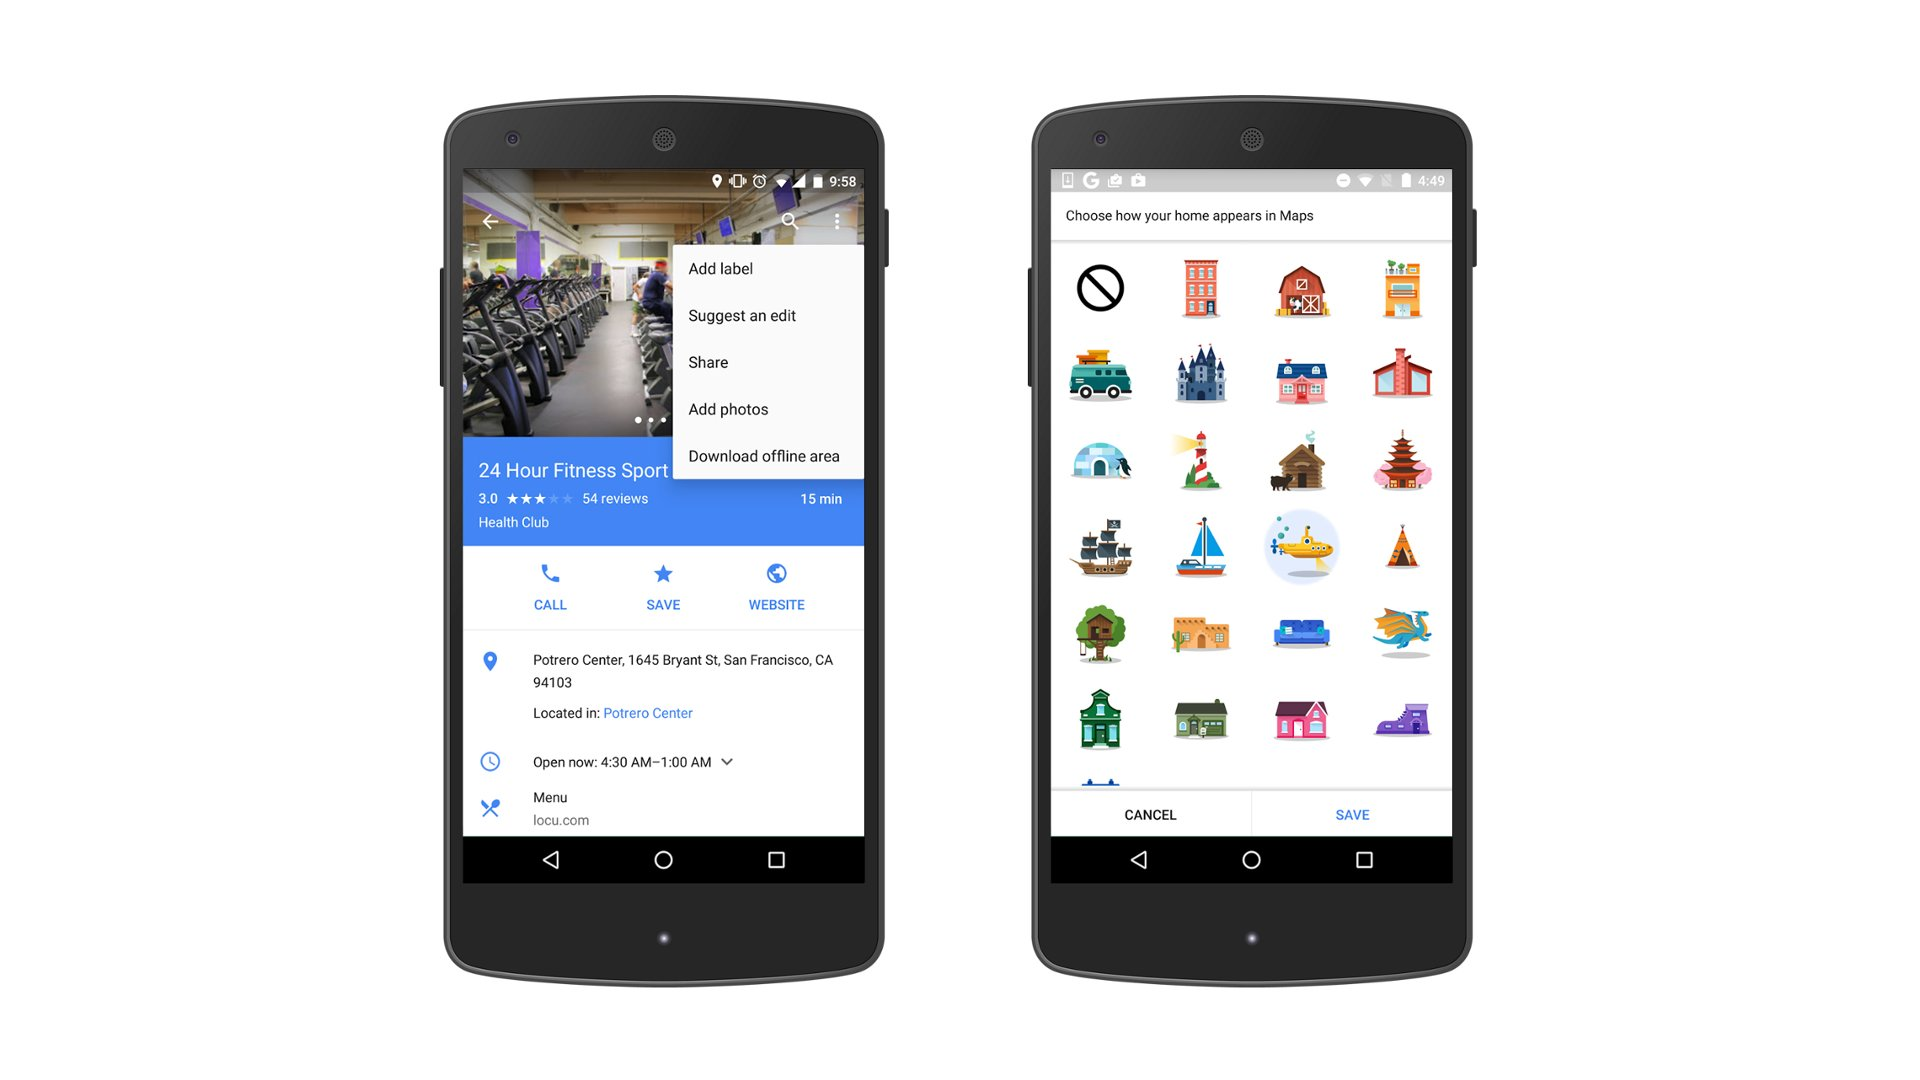 Google Maps Introduces Stickers To Mark Location